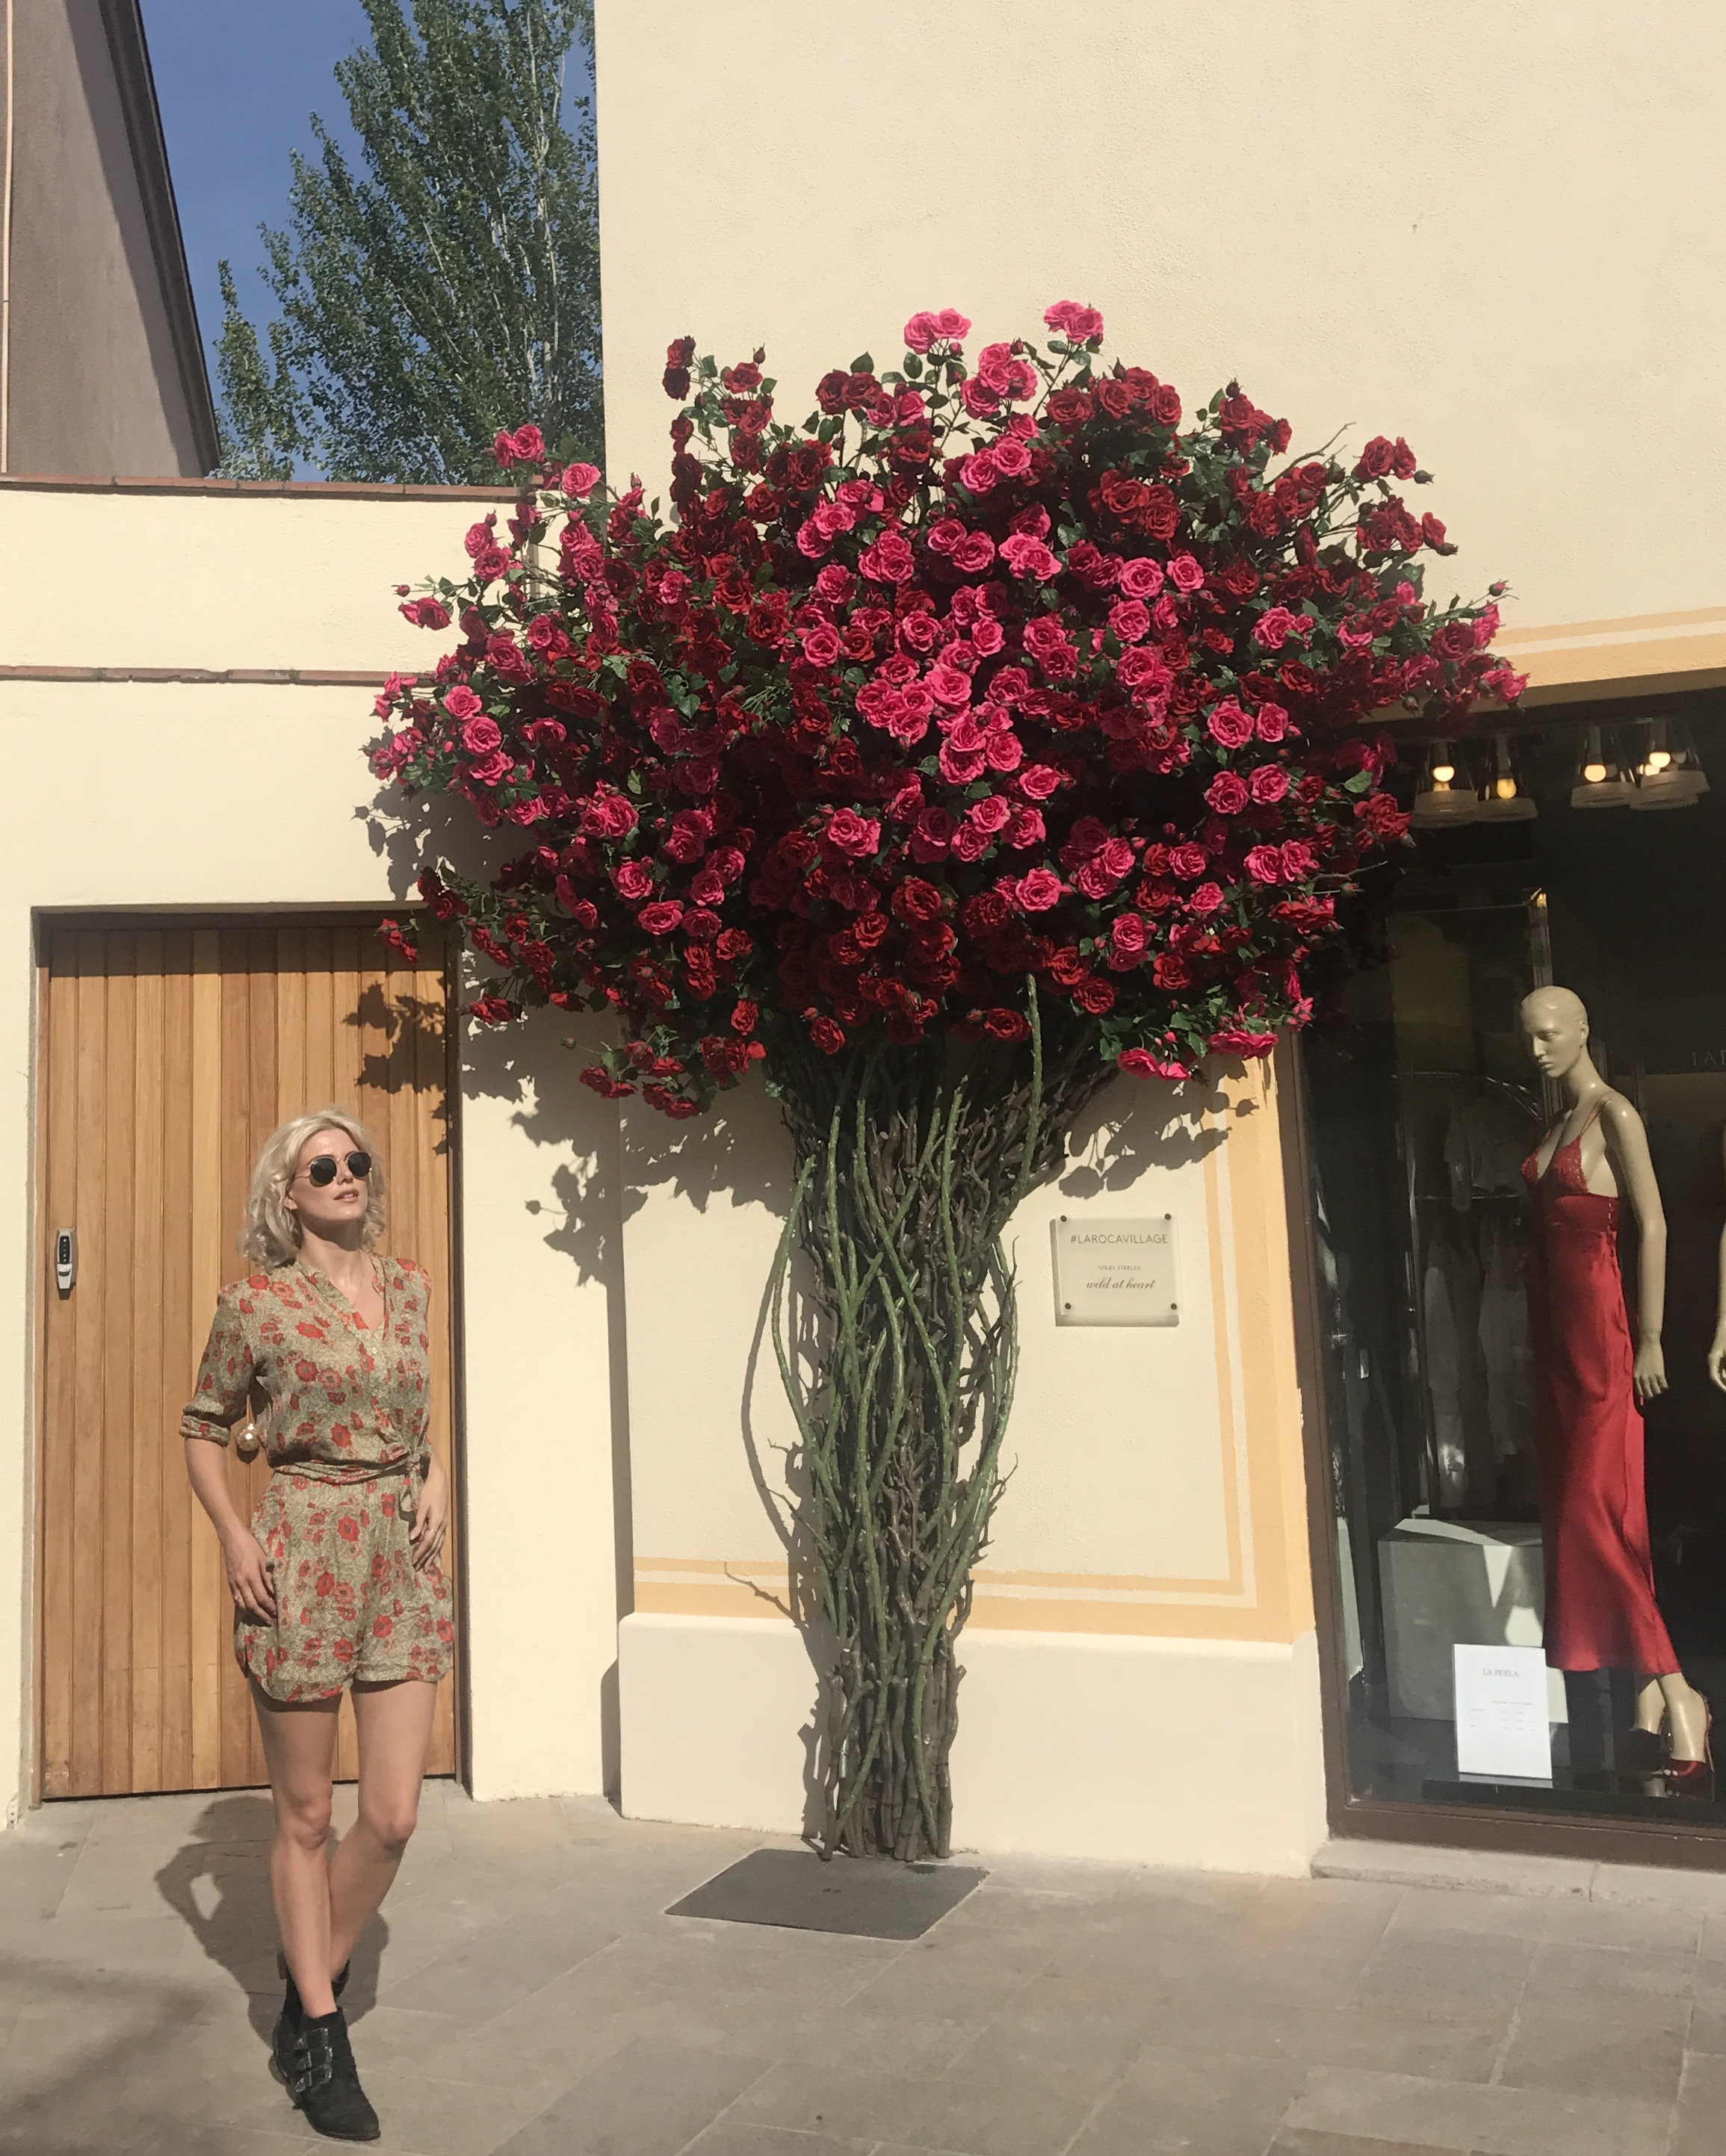 51c7d9e27 ... boutiques to shop in – I spent hours going through Burberry, Gucci,  Vivienne Westwood, La Perla and so many more, I think there's over 130  boutiques.